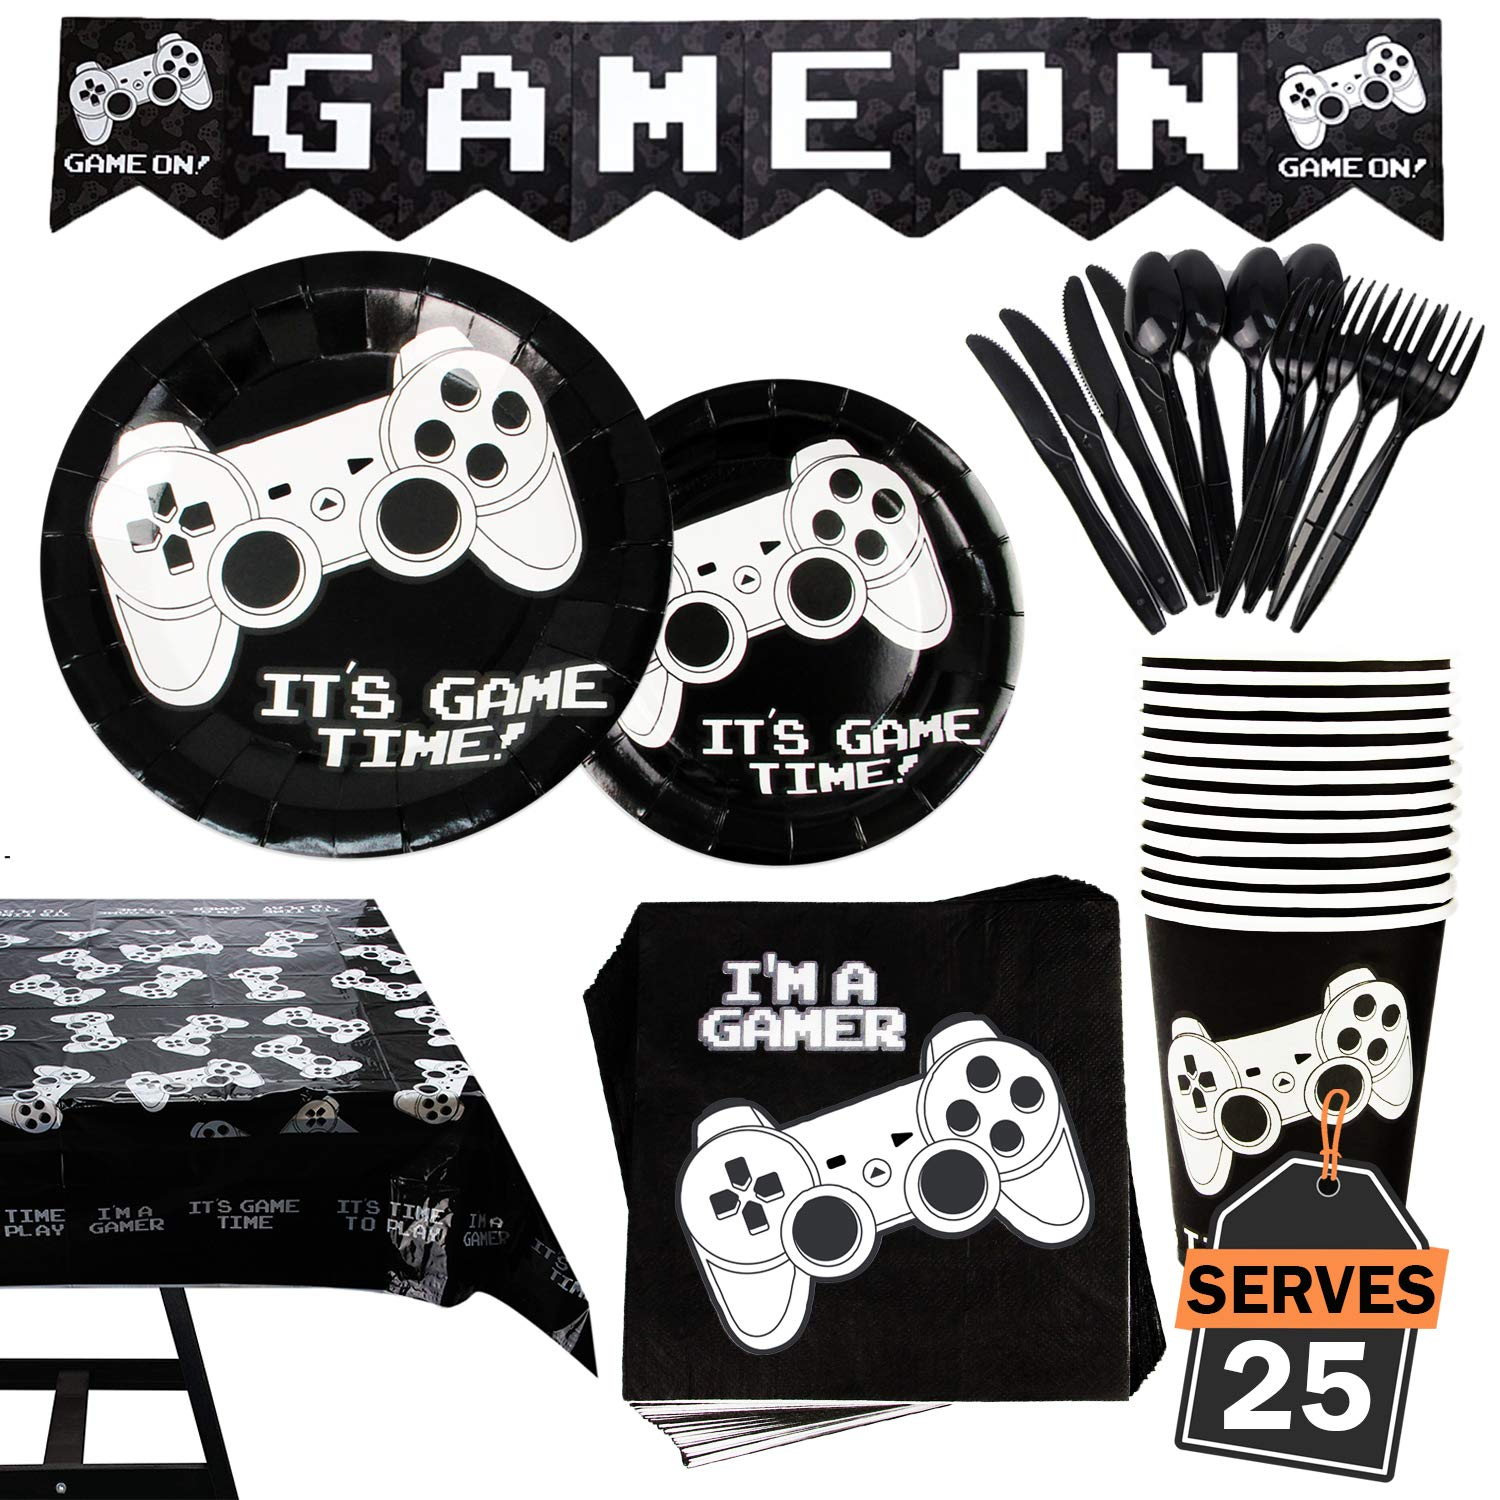 177 Piece Video Gaming Party Supplies Set Including Banner, Plates, Cups, Napkins, Tablecloth, Spoon, Forks, and Knives, Serves 25 by Scale Rank